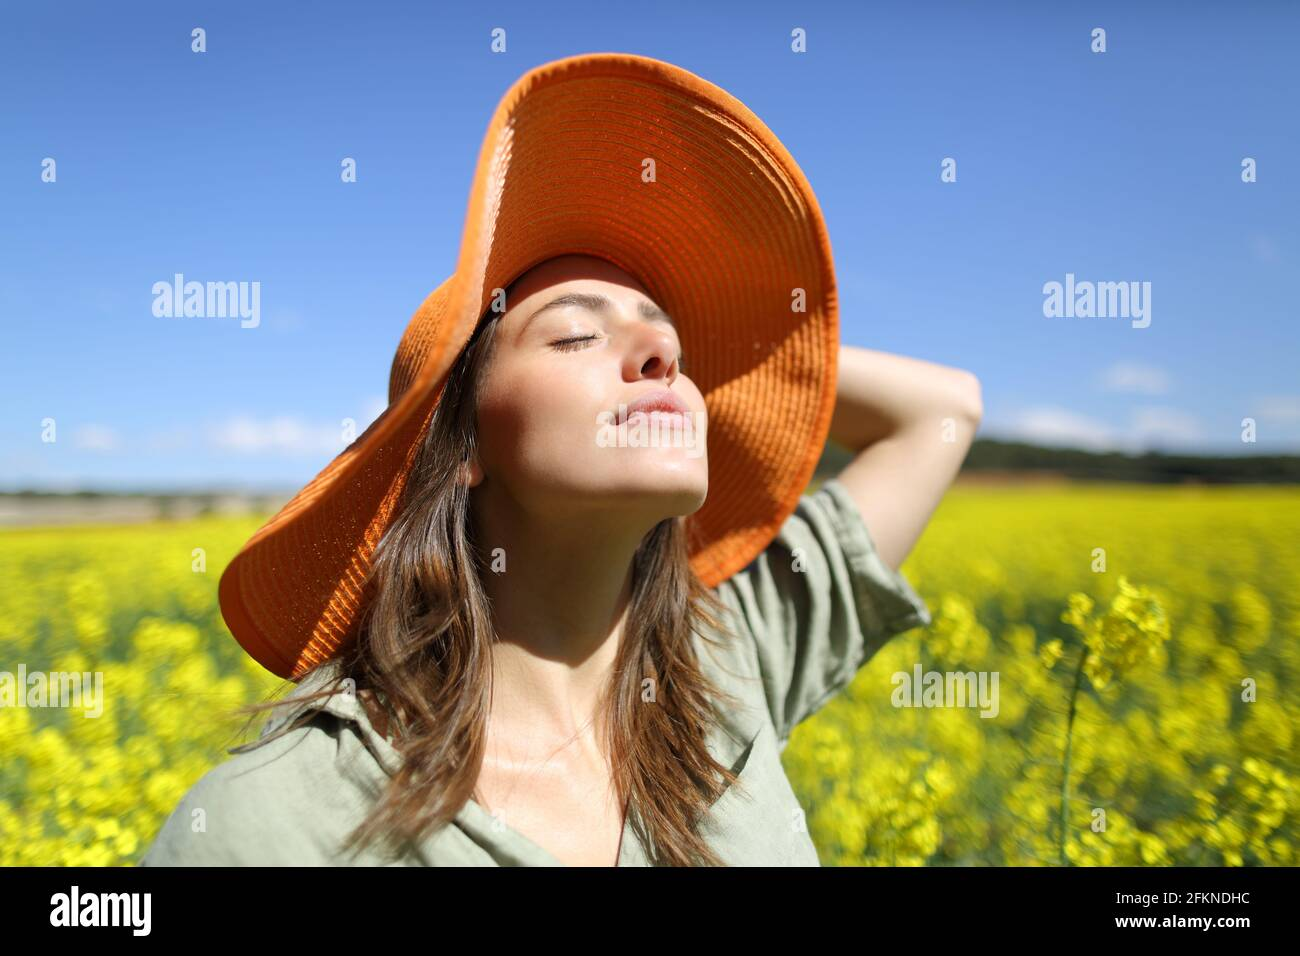 Satisfied woman with orange pamela breathing fresh air in a yellow flowered field Stock Photo